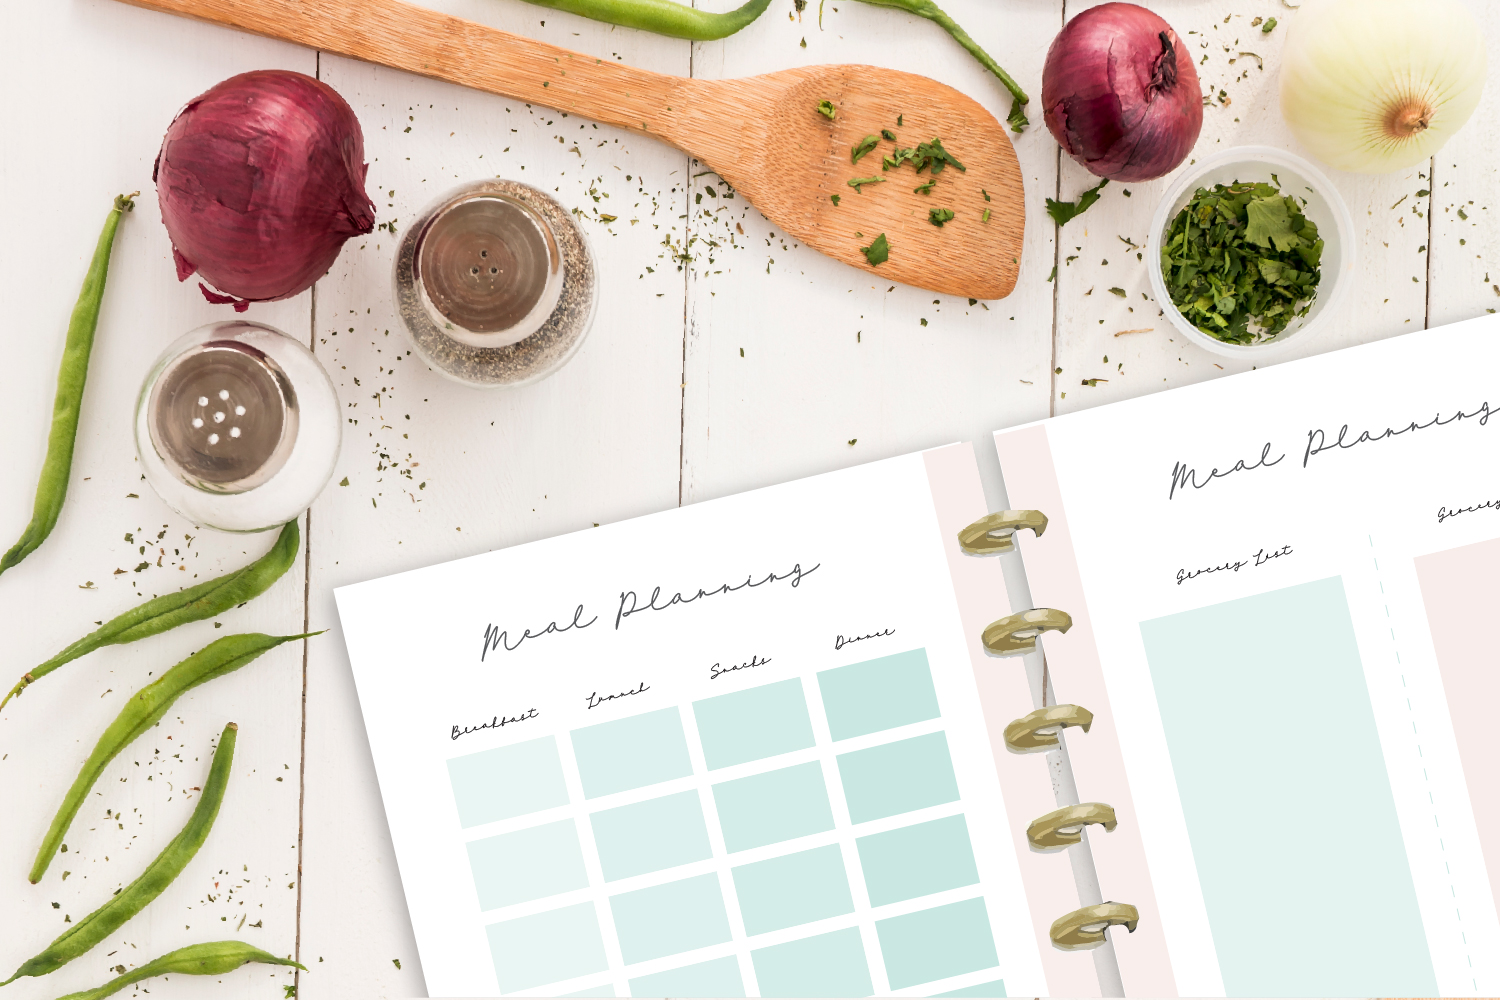 Meal Planner Printable example image 1